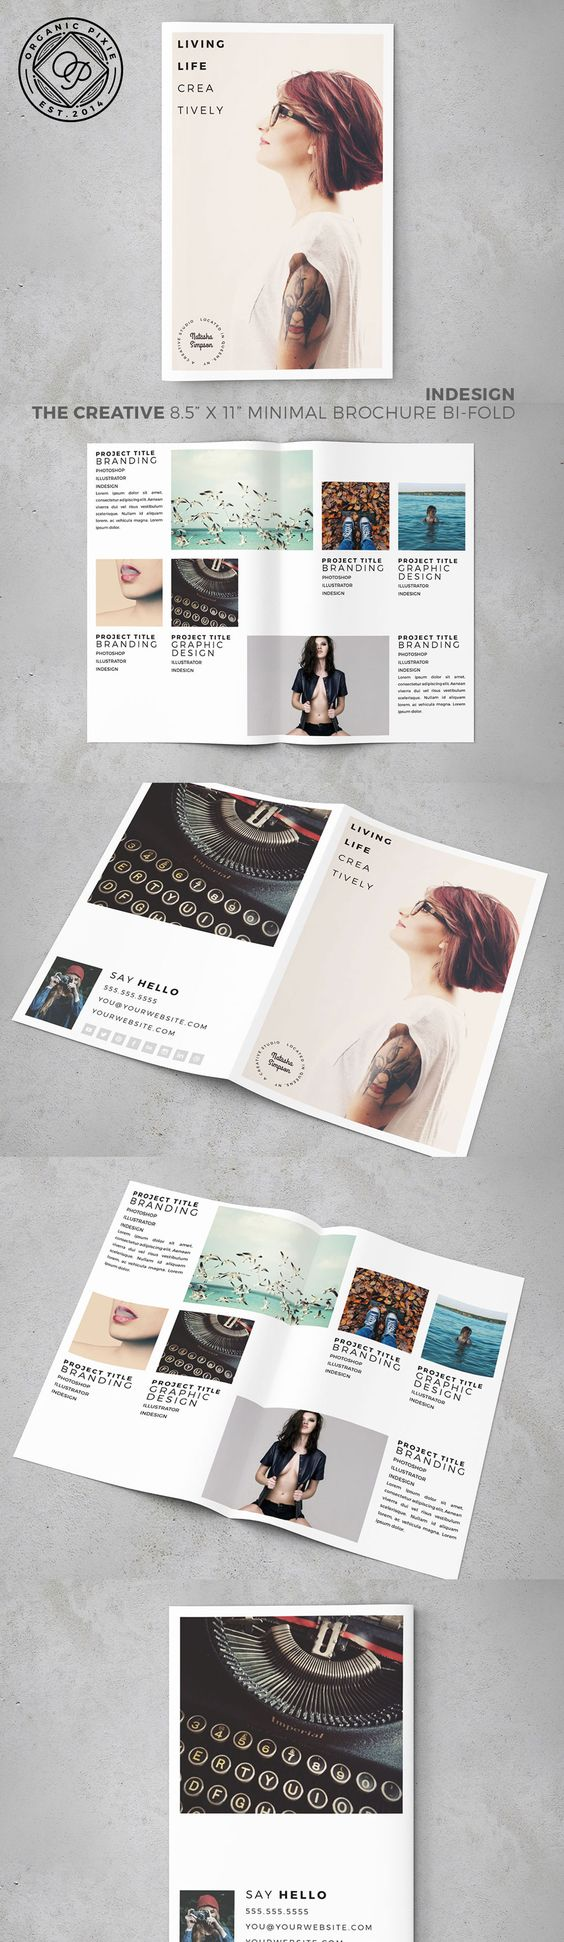 cost to design a brochure - brochure design brochure design templates and brochures